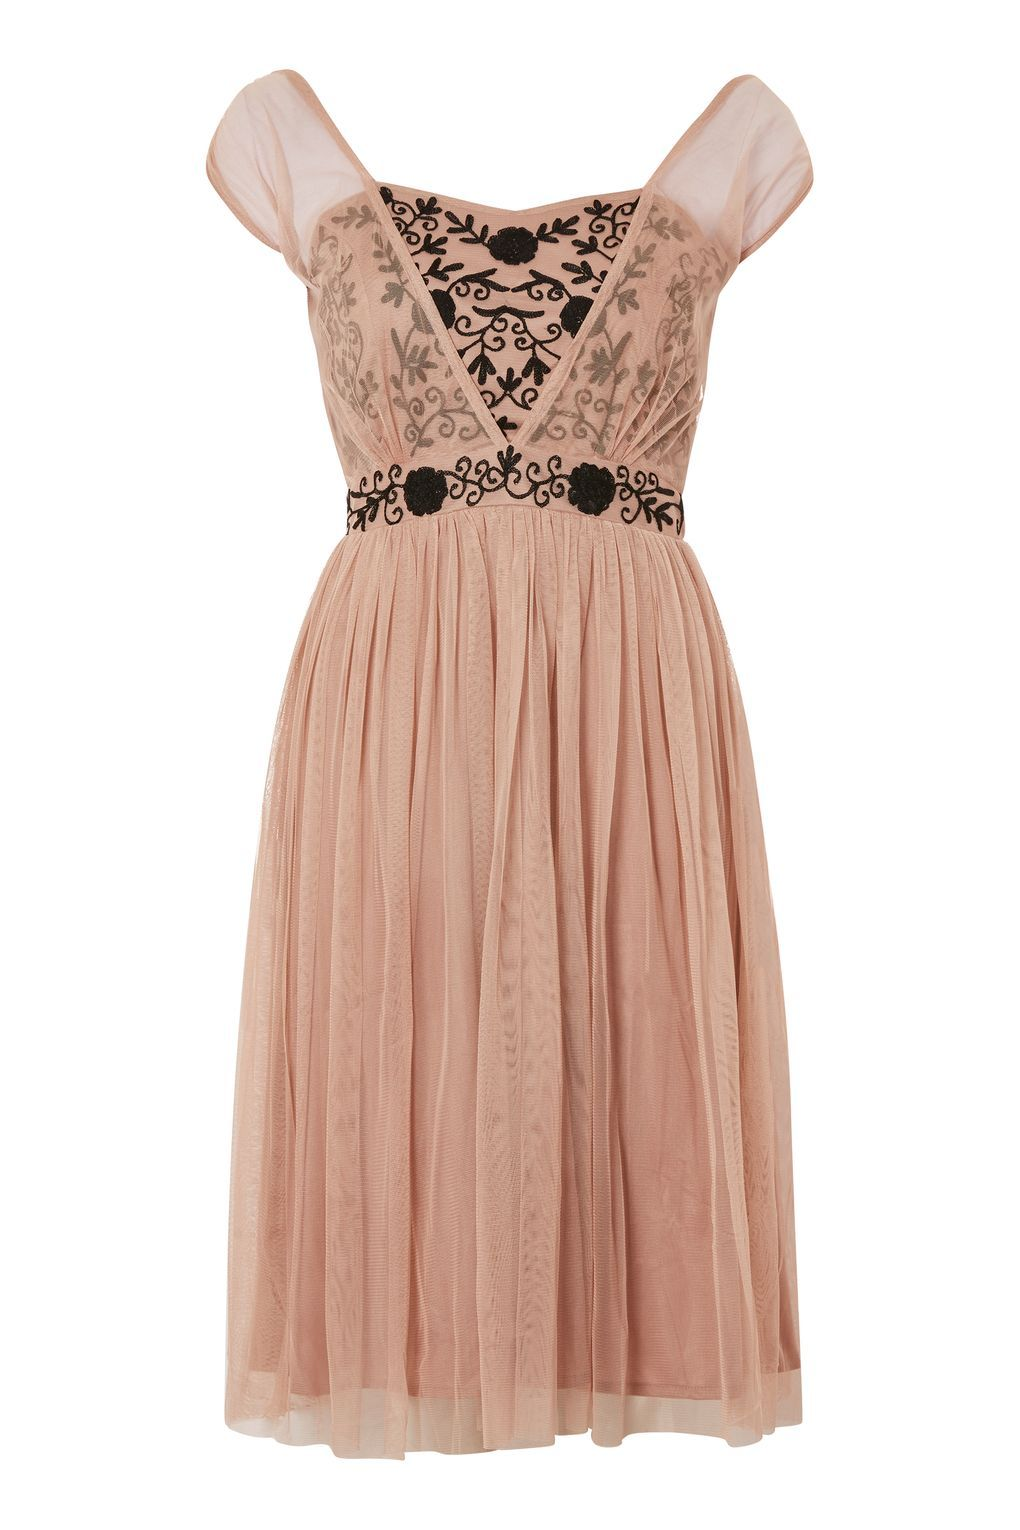 Asteral Midikleid von Lace & Beads - Marken | Hope fashion, Lace ...